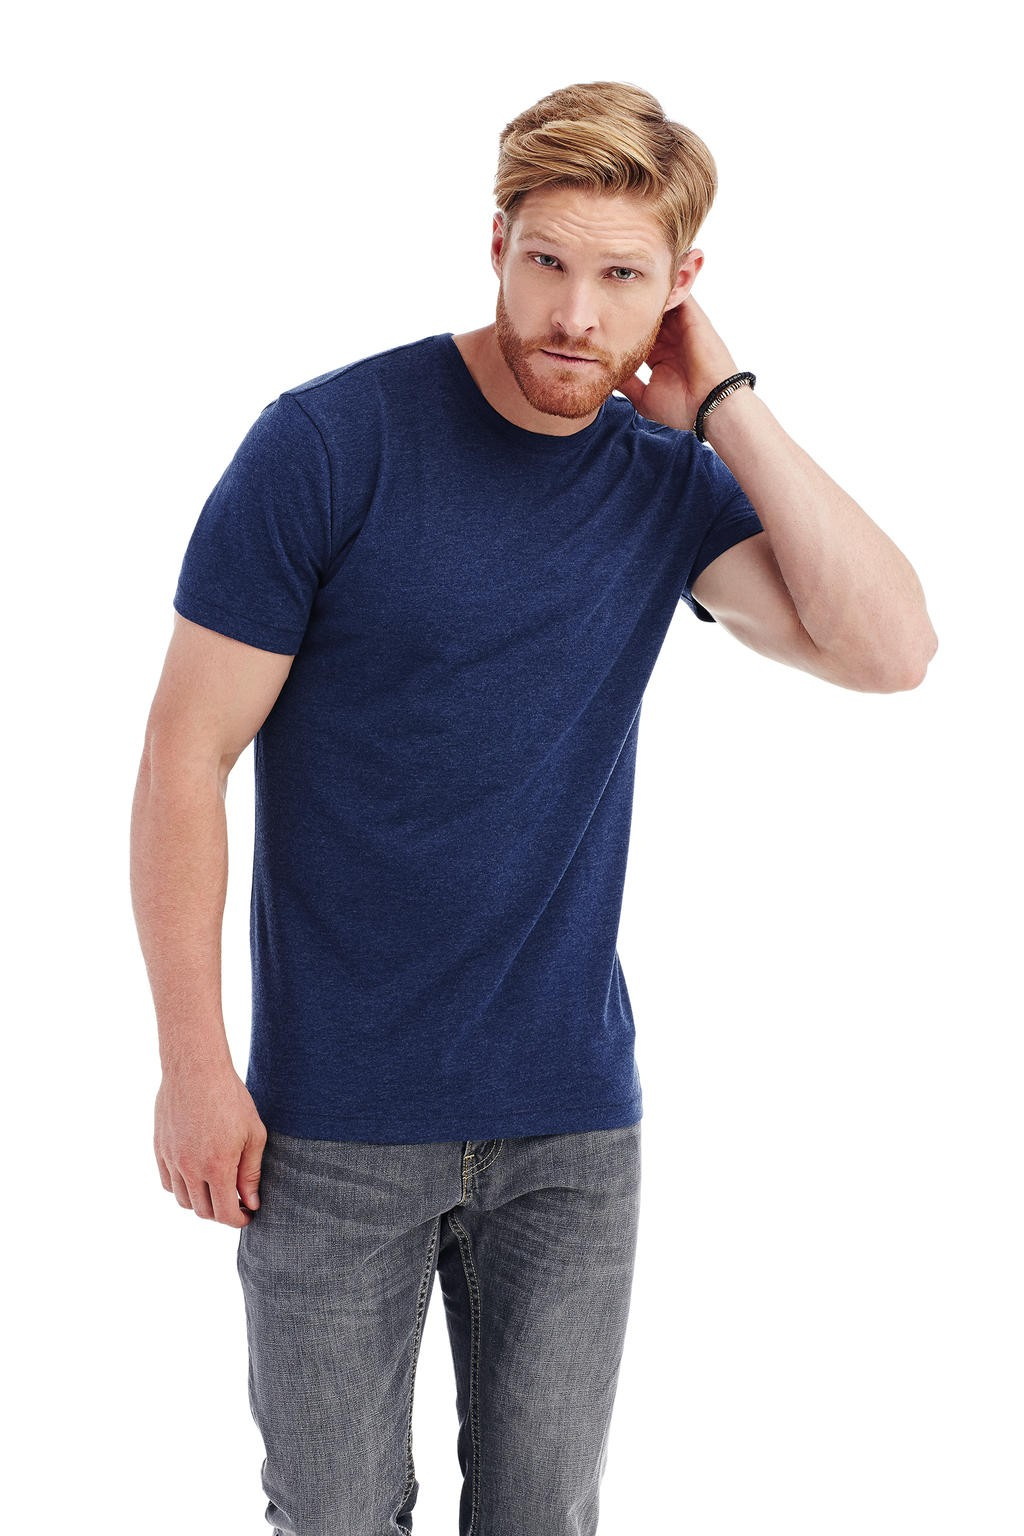 stedman men Jiffyshirtscom has the lowest prices fastest delivery shop for cheap blank shirts, t-shirts, polo shirts, jackets, tee shirts, knit shirts, fleece pullovers, denim shirts, outerwear, headgear, sport shirts.